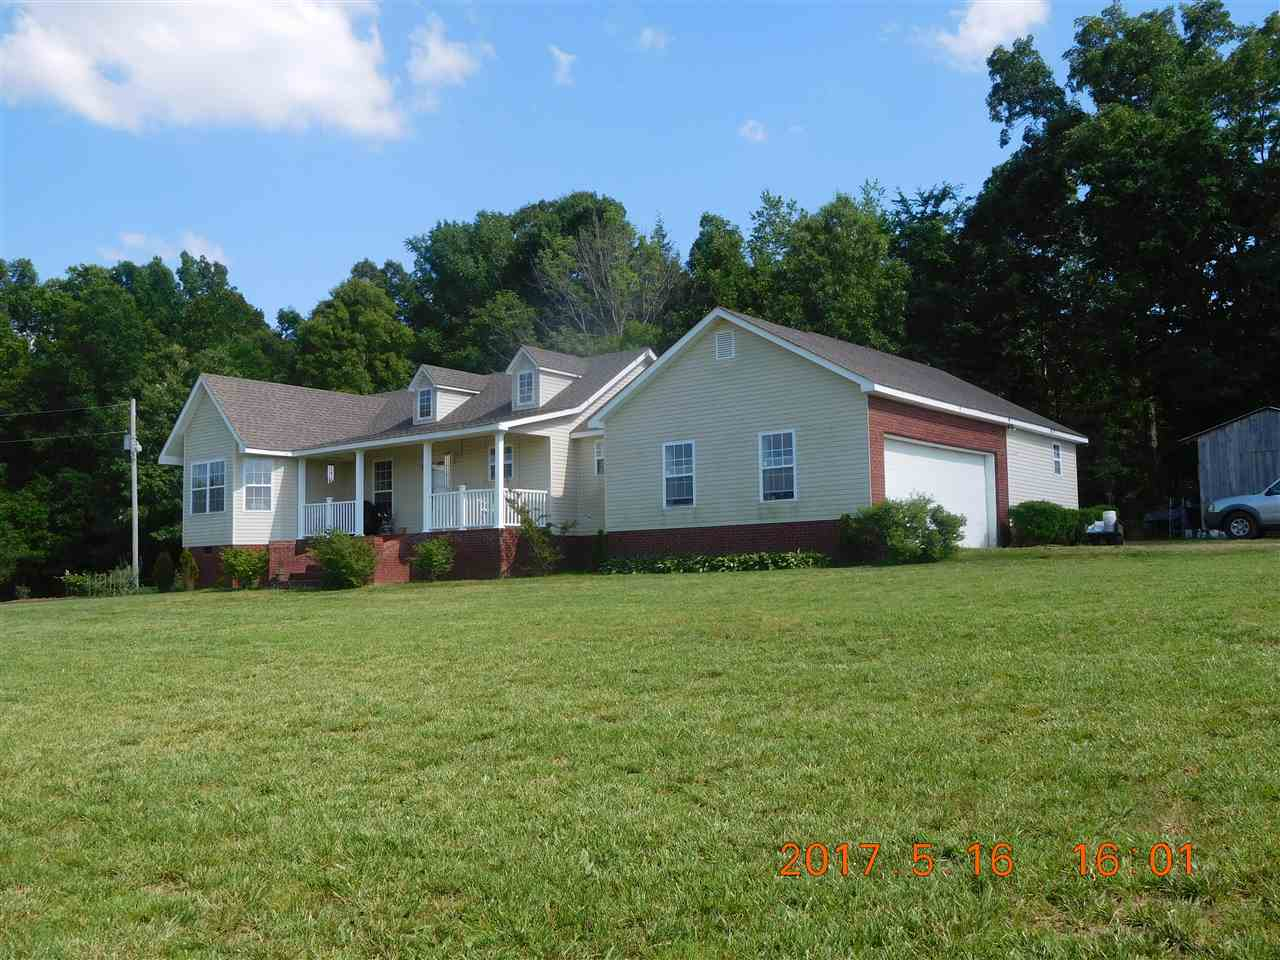 31925 69 Savannah, TN 38372 - MLS #: 10004142